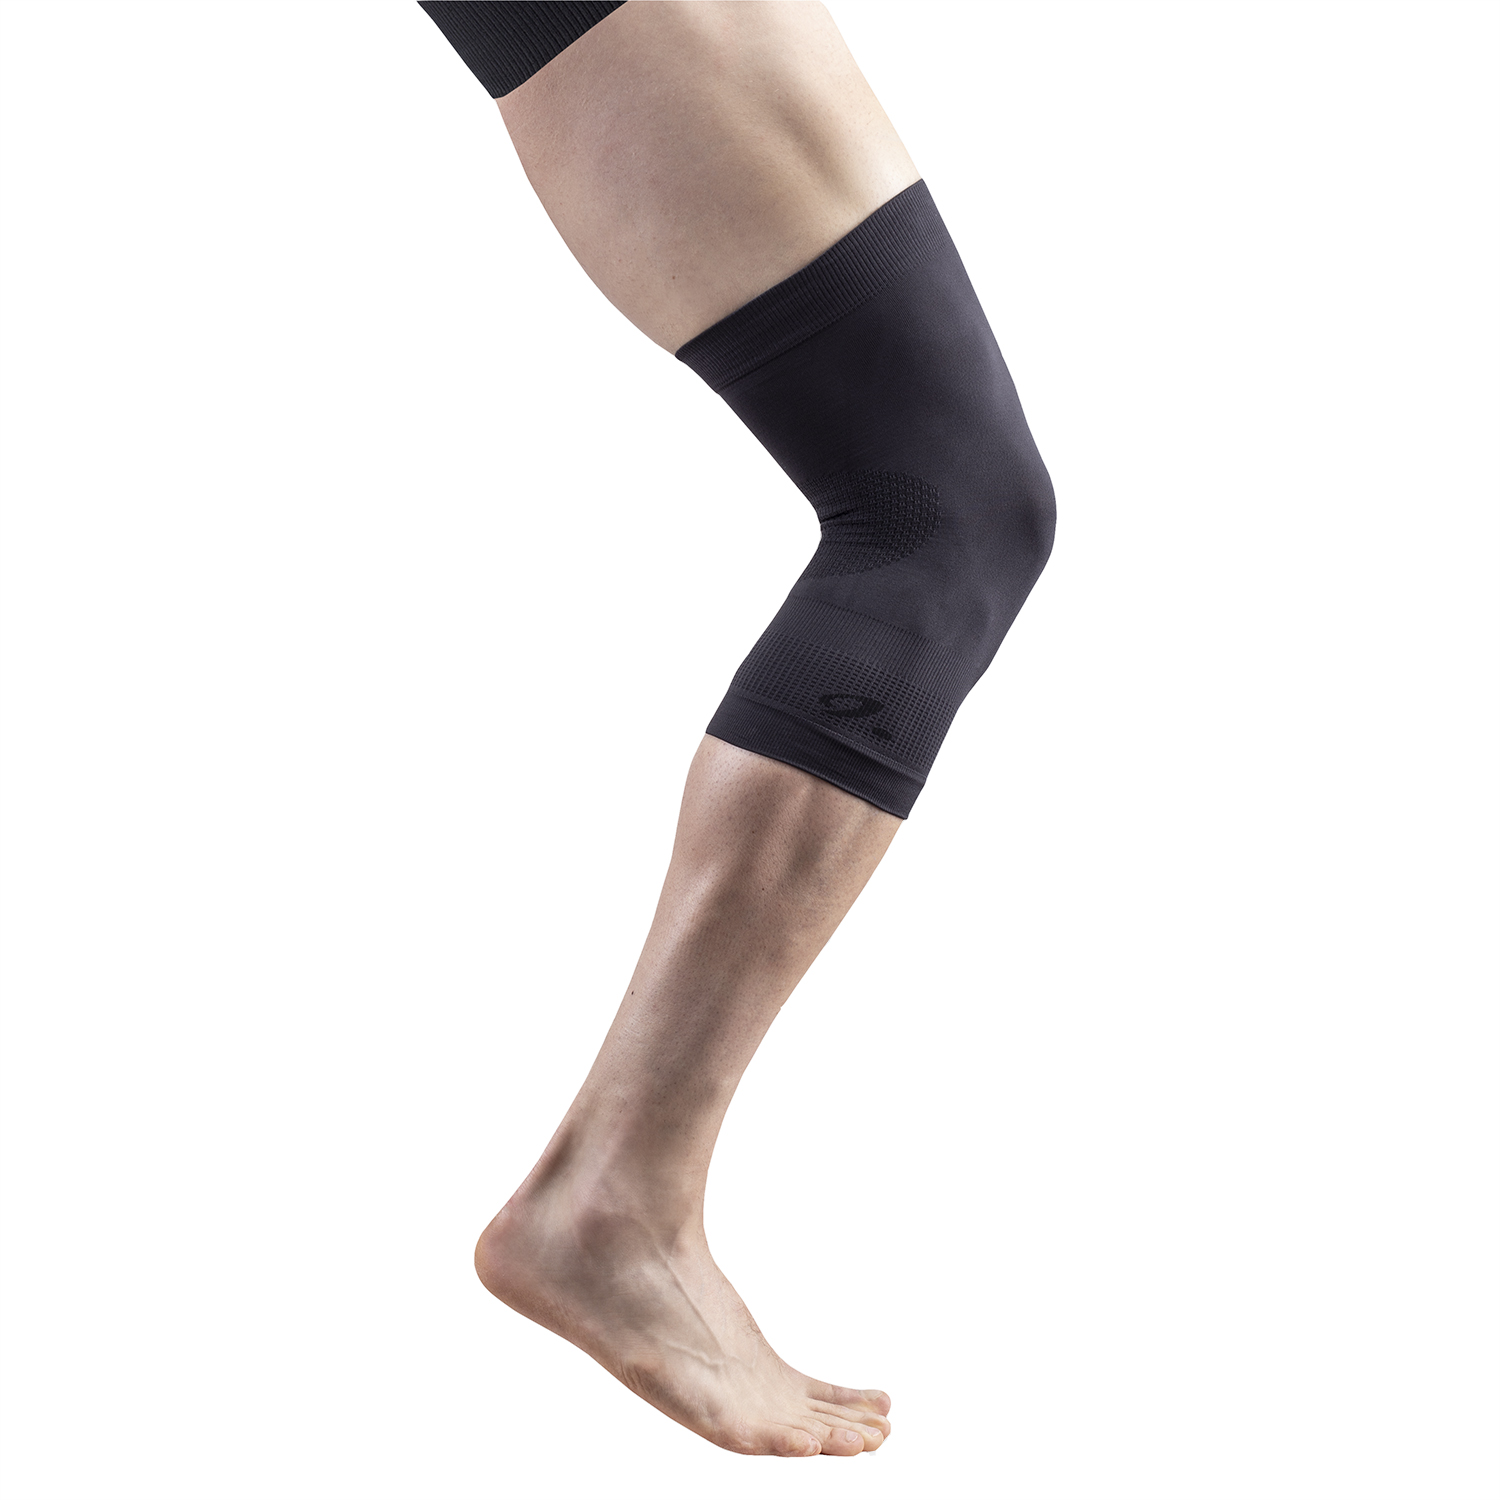 Isadore Eco-Knit Knee Warmers | Warmers